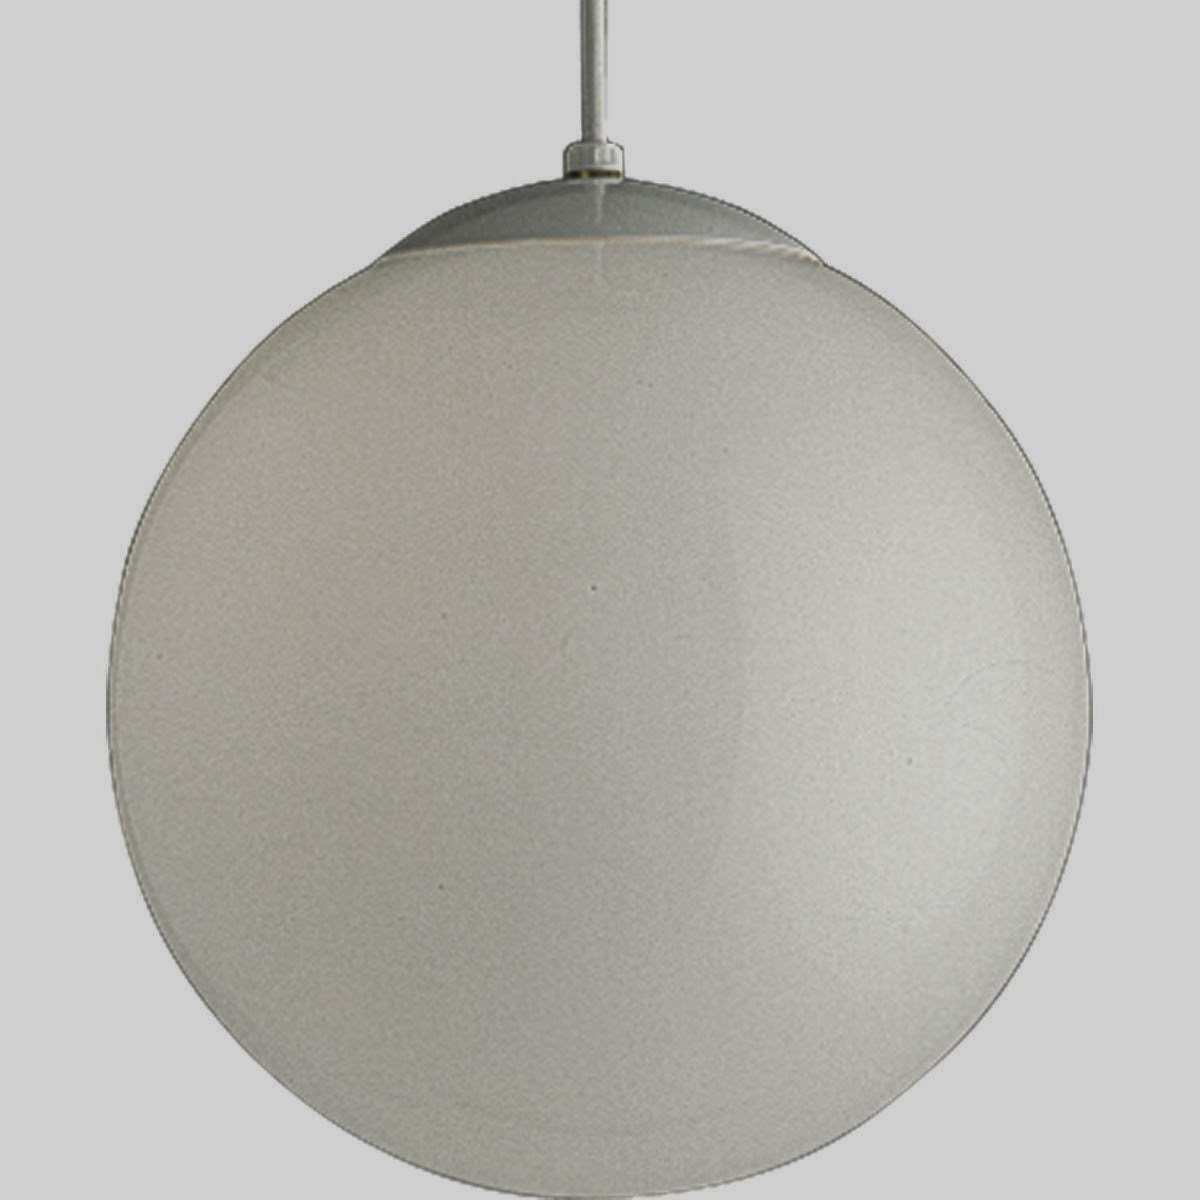 Eichler Globe Lighting. globe lights fogmodern. west elm